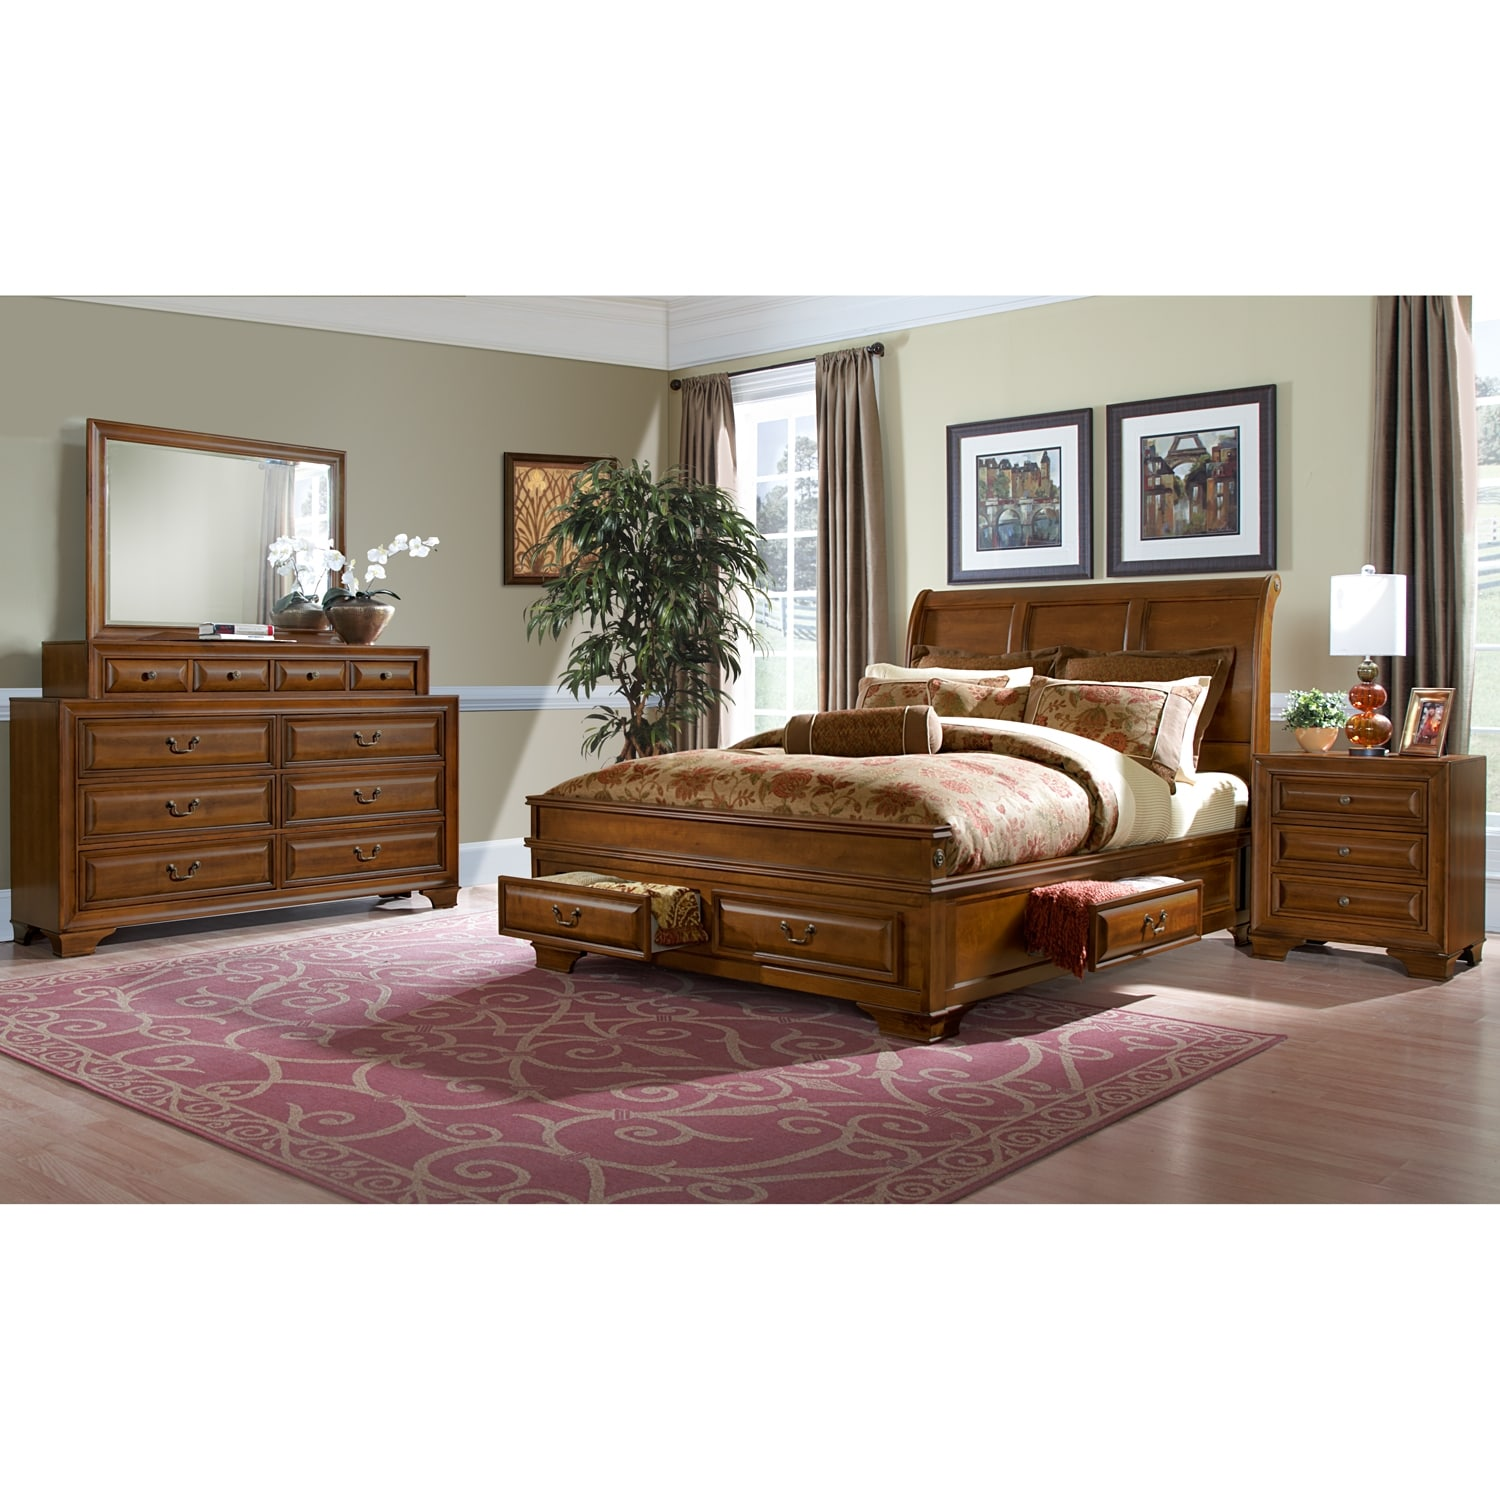 Bedroom Furniture - Sanibelle 6 Pc. King Storage Bedroom